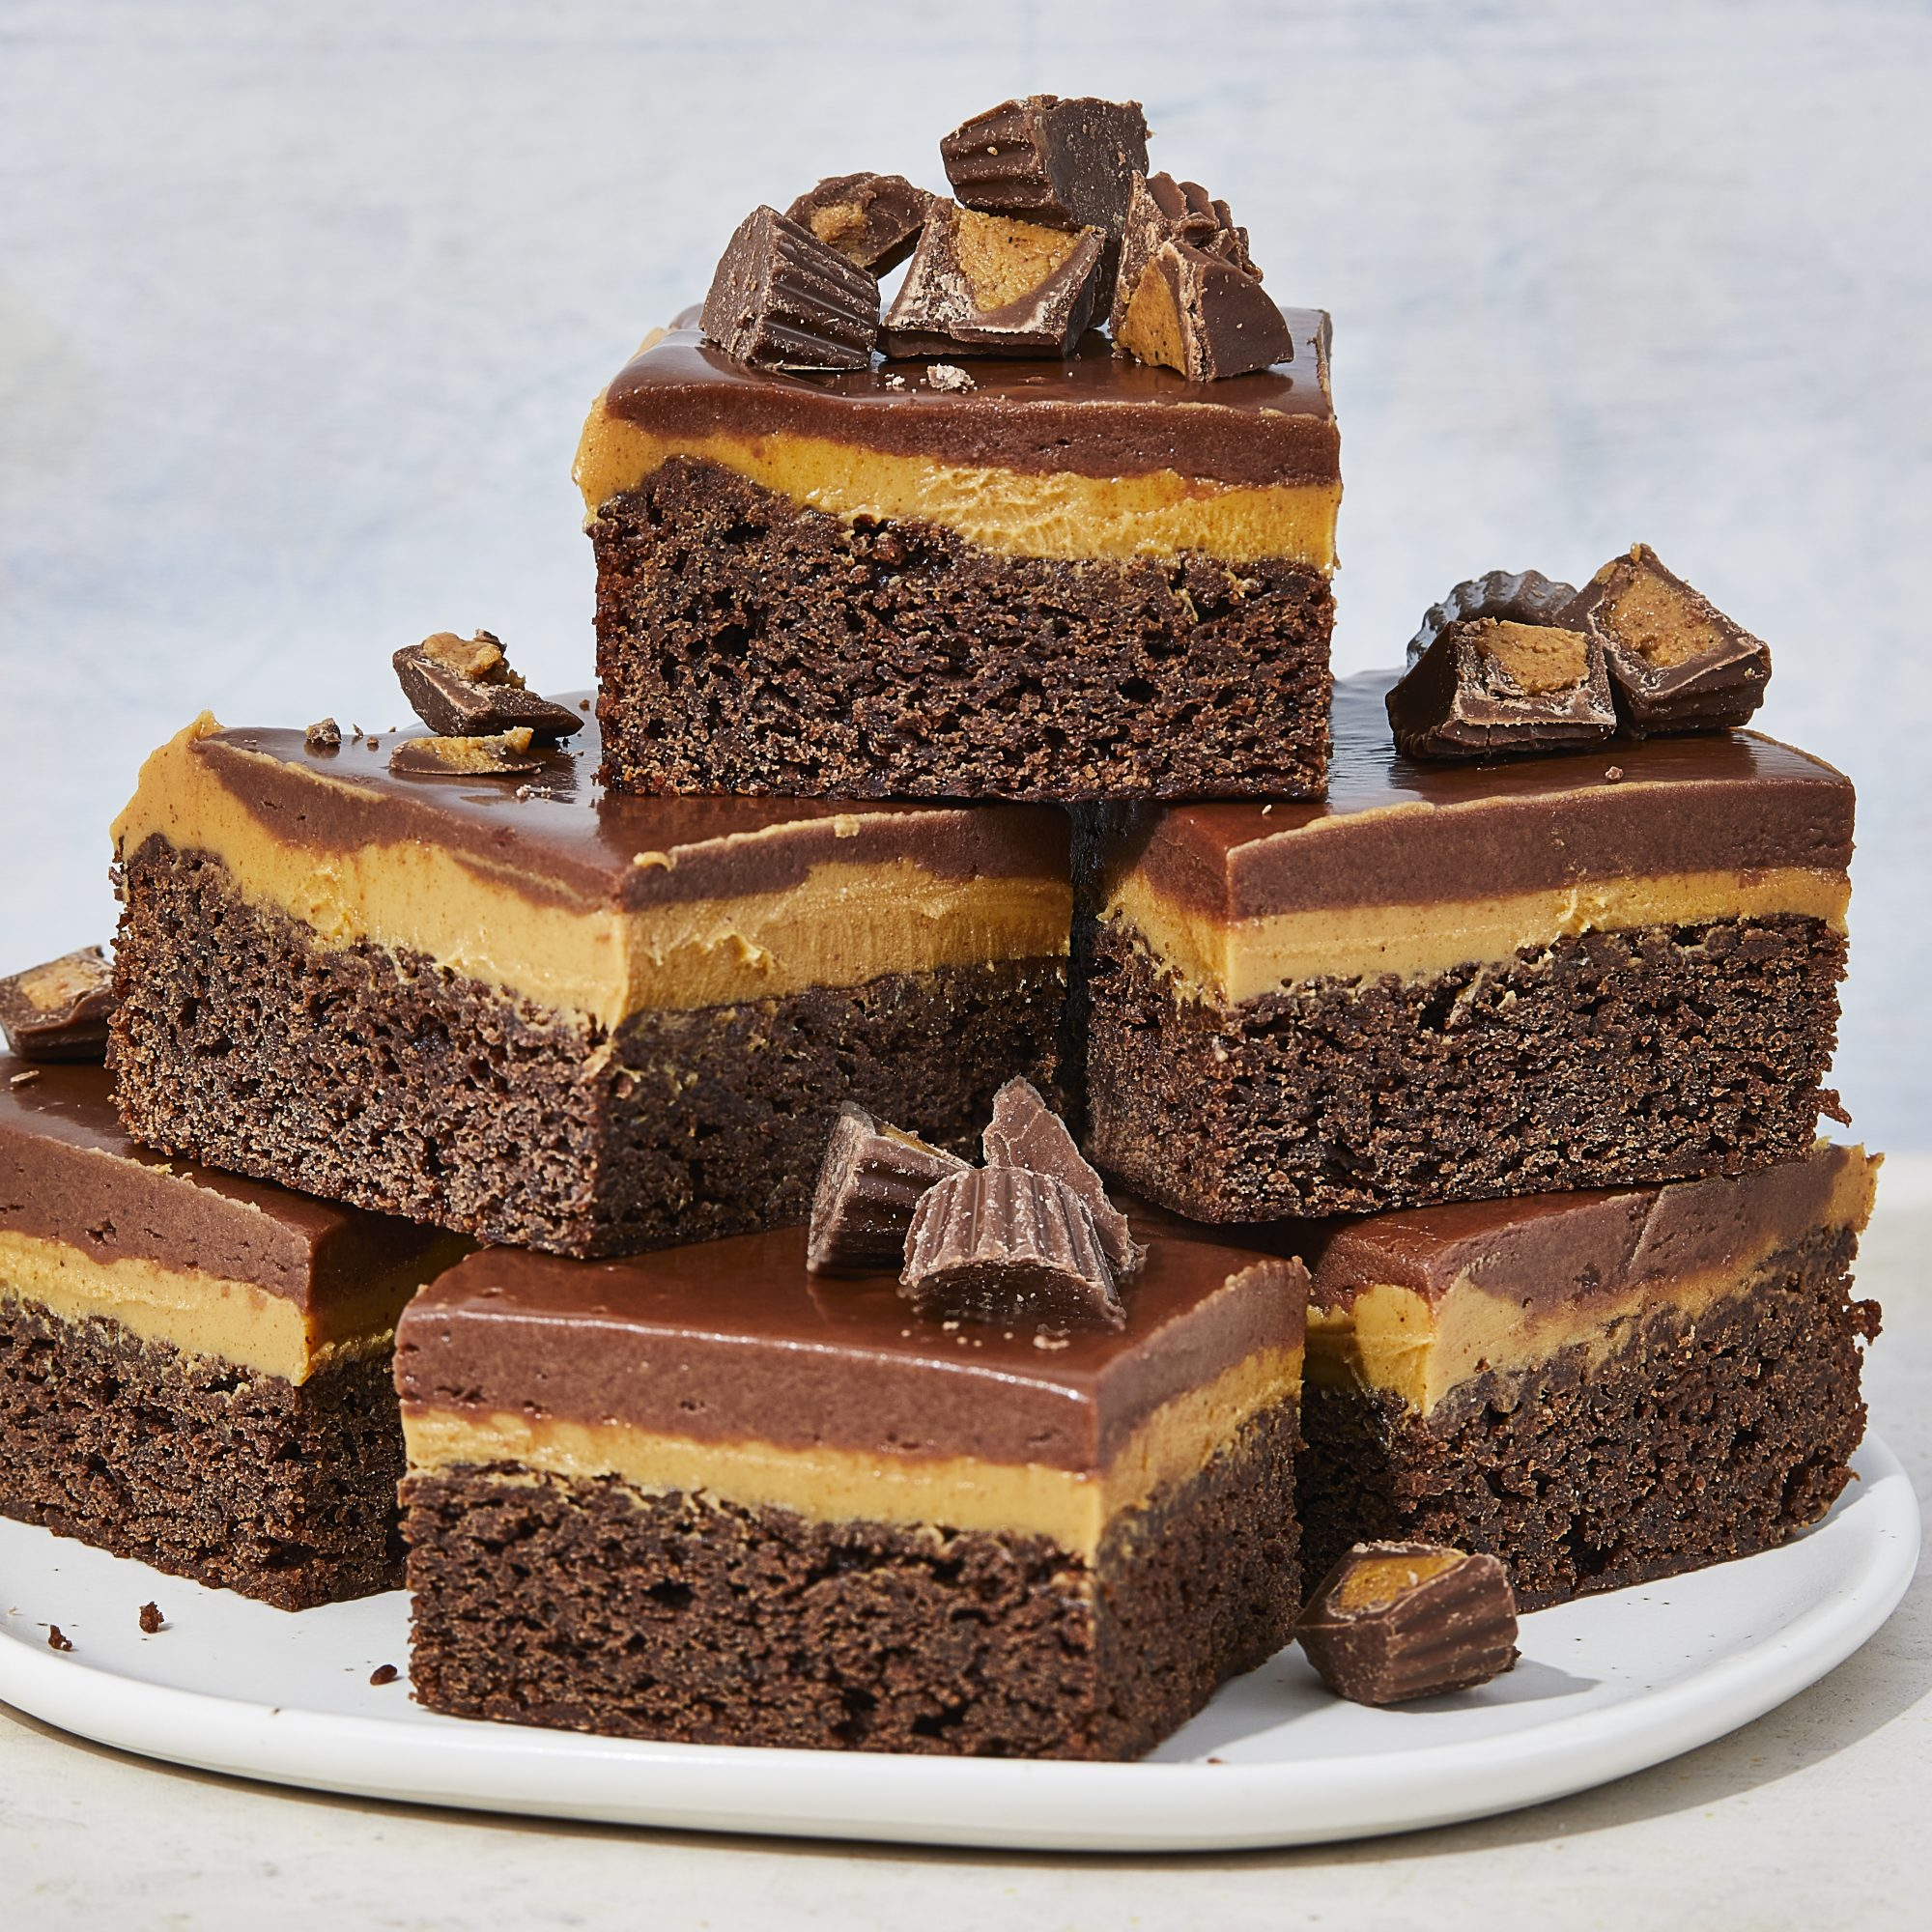 Peanut butter fudge cake slices stacked on a plate and sprinkled with chopped peanut butter cups